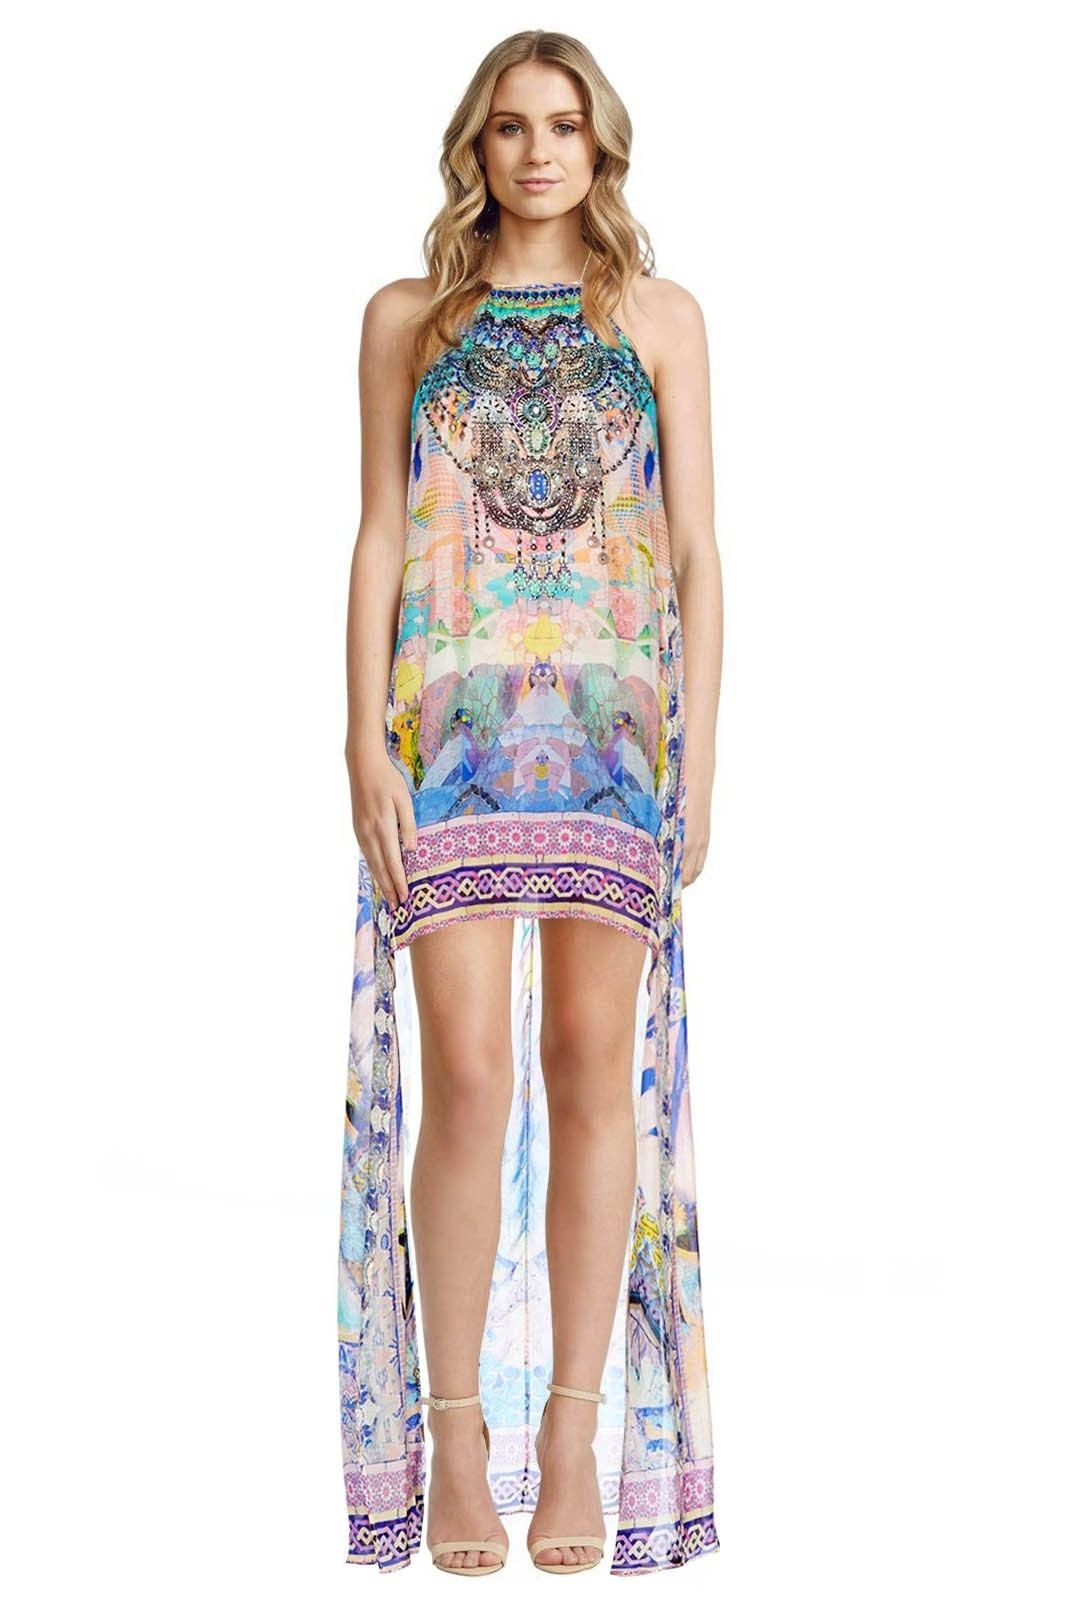 Camilla - Gaudi Tribute Short Sheer Overlay Dress - Prints - Front